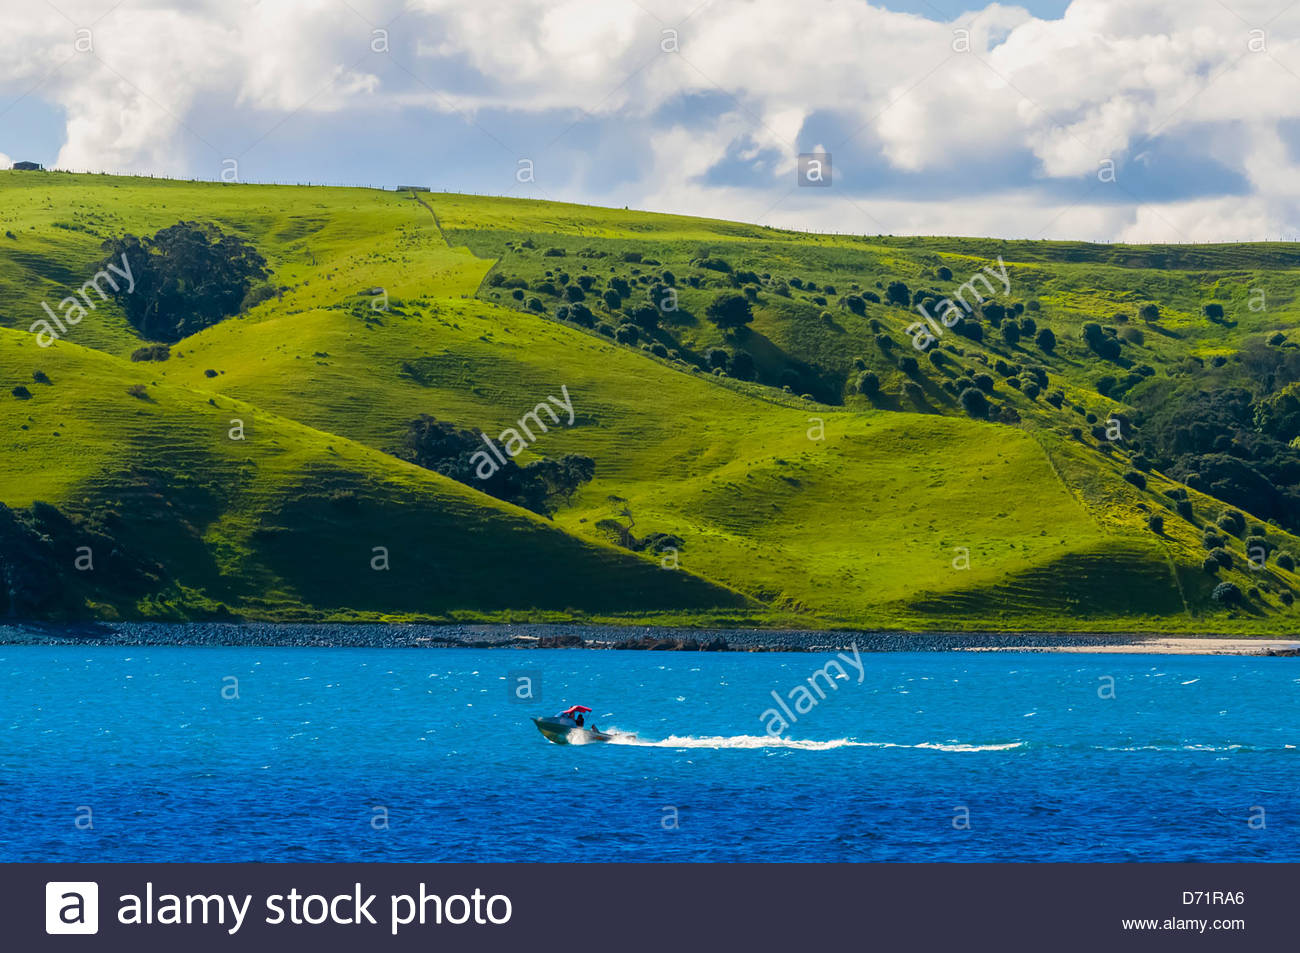 Hauraki Gulf, near Auckland, New Zealand - Stock Image